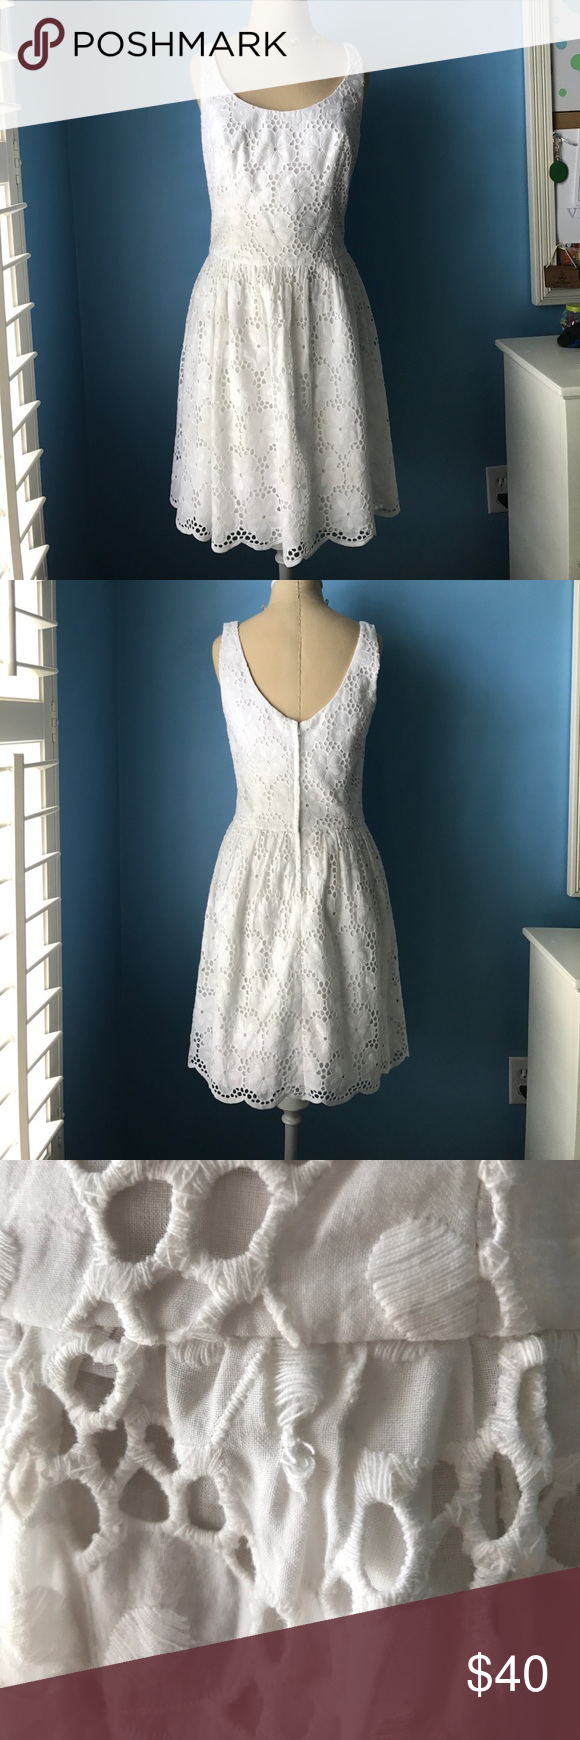 Lilly Pulitzer white eyelet dress Good condition Lilly Pulitzer dress. White eyelet, sleeveless, scoop neck. 100% cotton. Has a little bit of barely noticeable fraying as shown in photo #3 Lilly Pulitzer Dresses